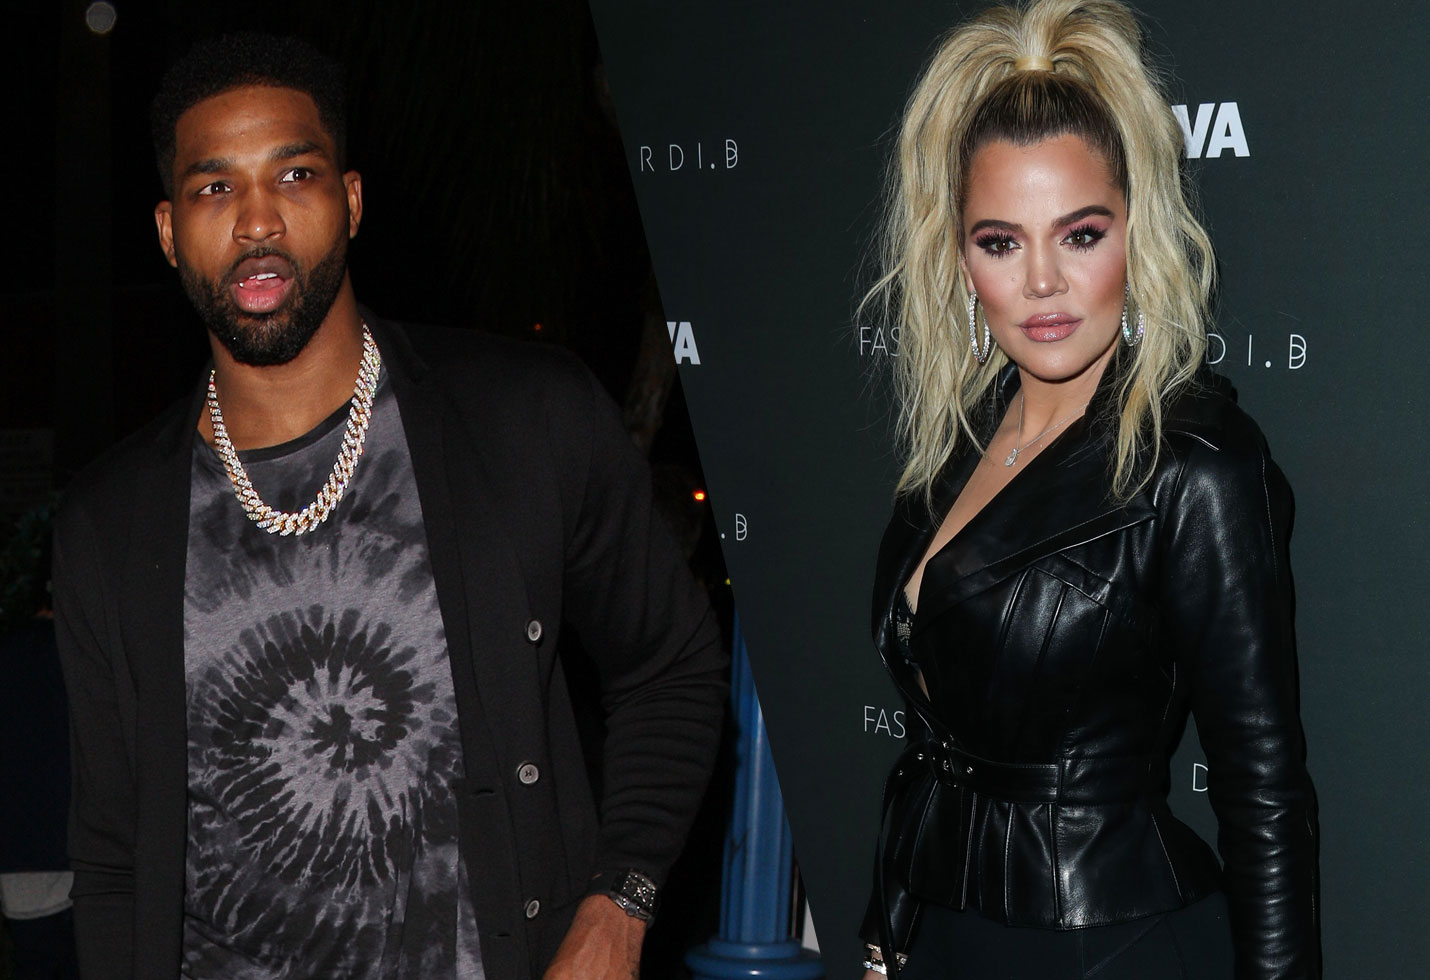 Tristan Thompson, Already Spotted With A New Lady In NYC Looking Comfy And He Even Smiles For The Camera, While Khloe Weeps On Social Media - See The Pics